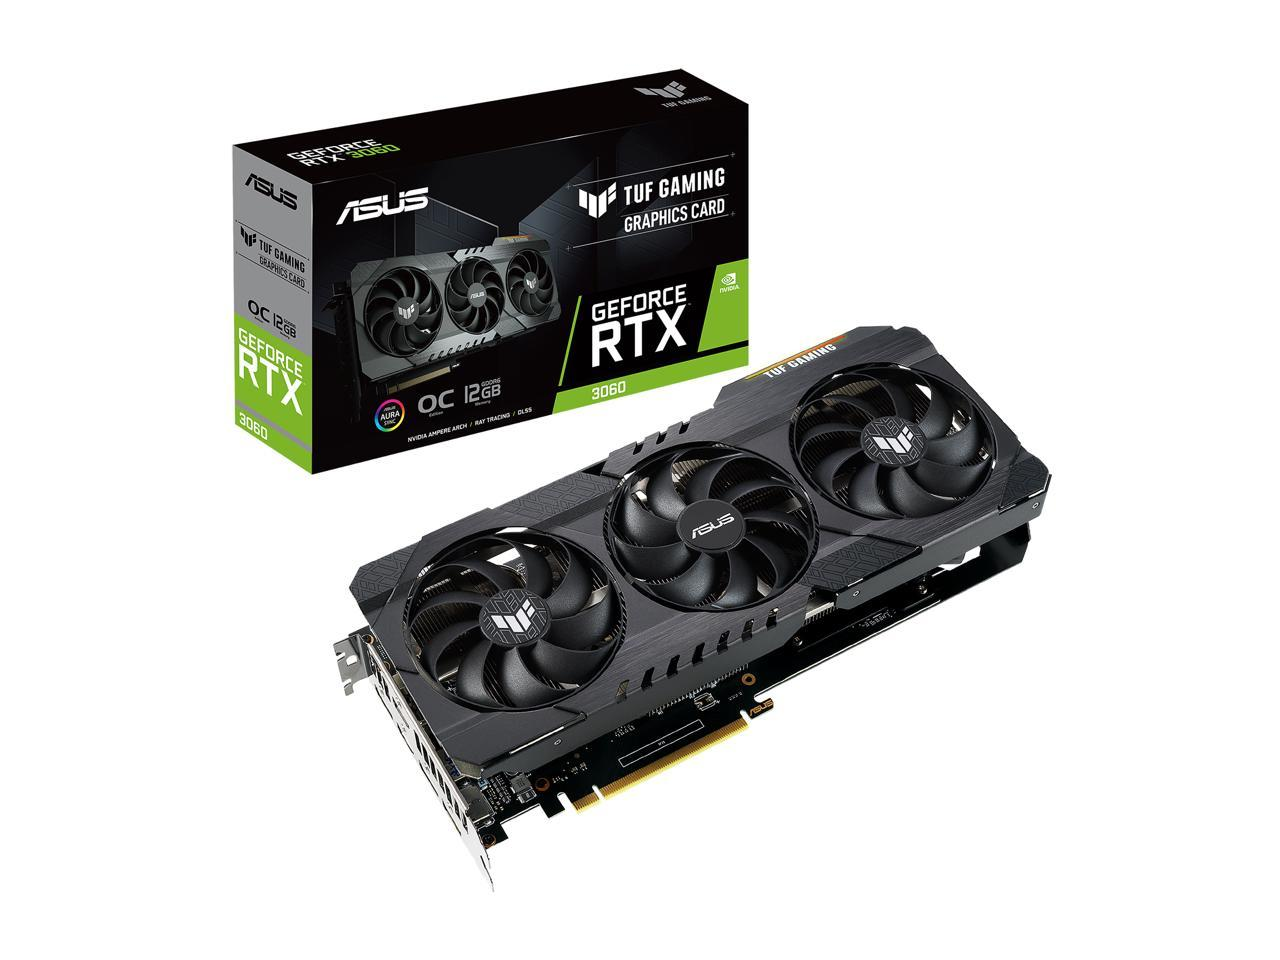 ASUS TUF Gaming GeForce RTX 3060 OC + Zotac ZBOX CL329 NANO BUNDLE IN STOCK